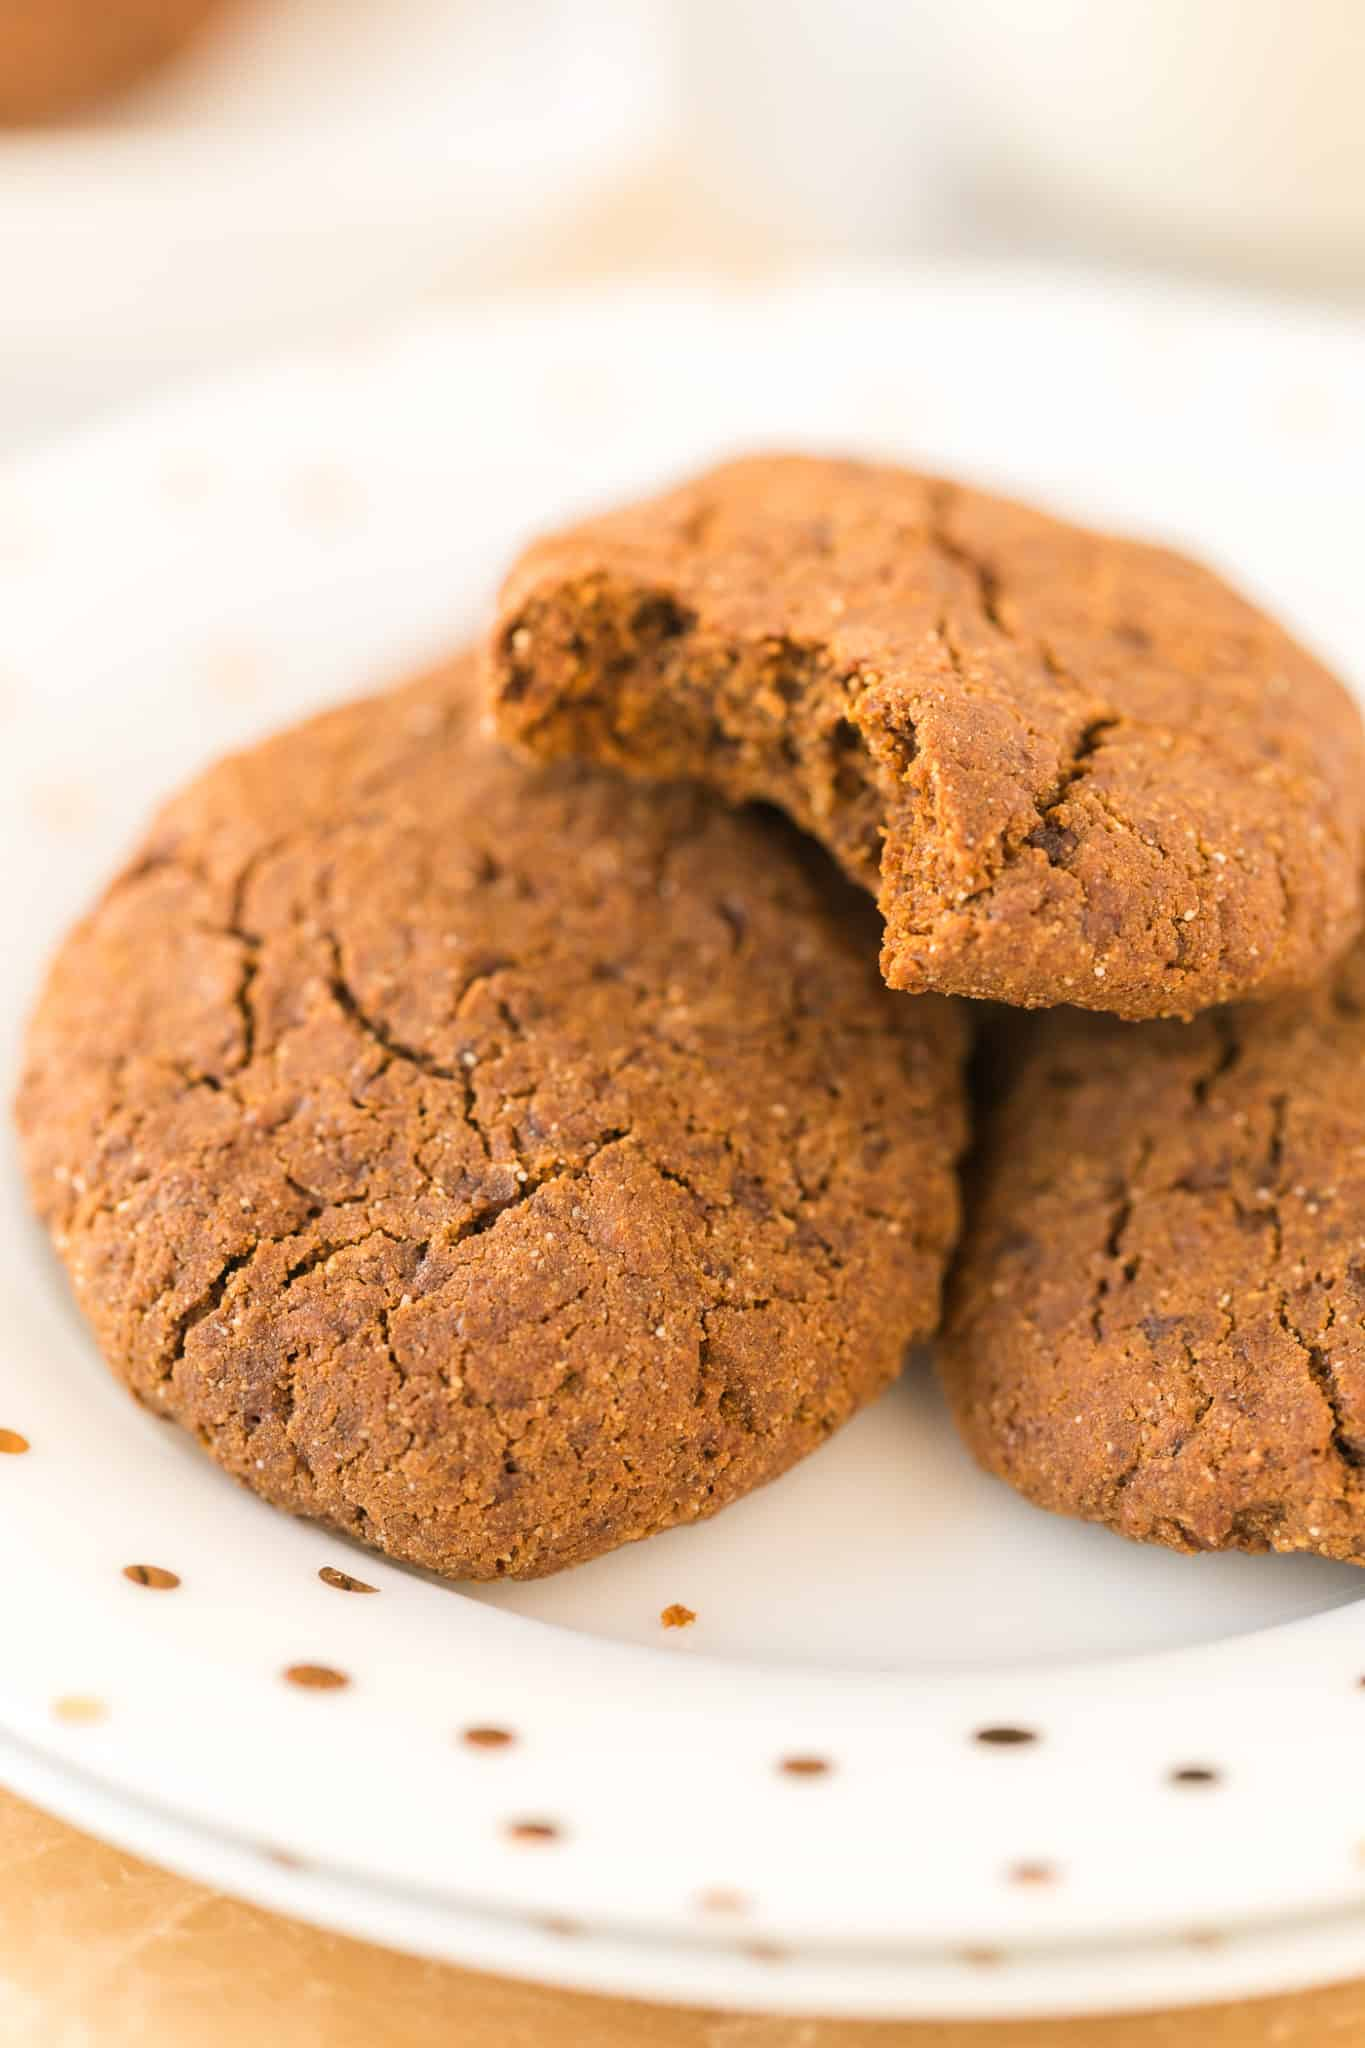 three molasses cookies on a plate with a bite taken out of one